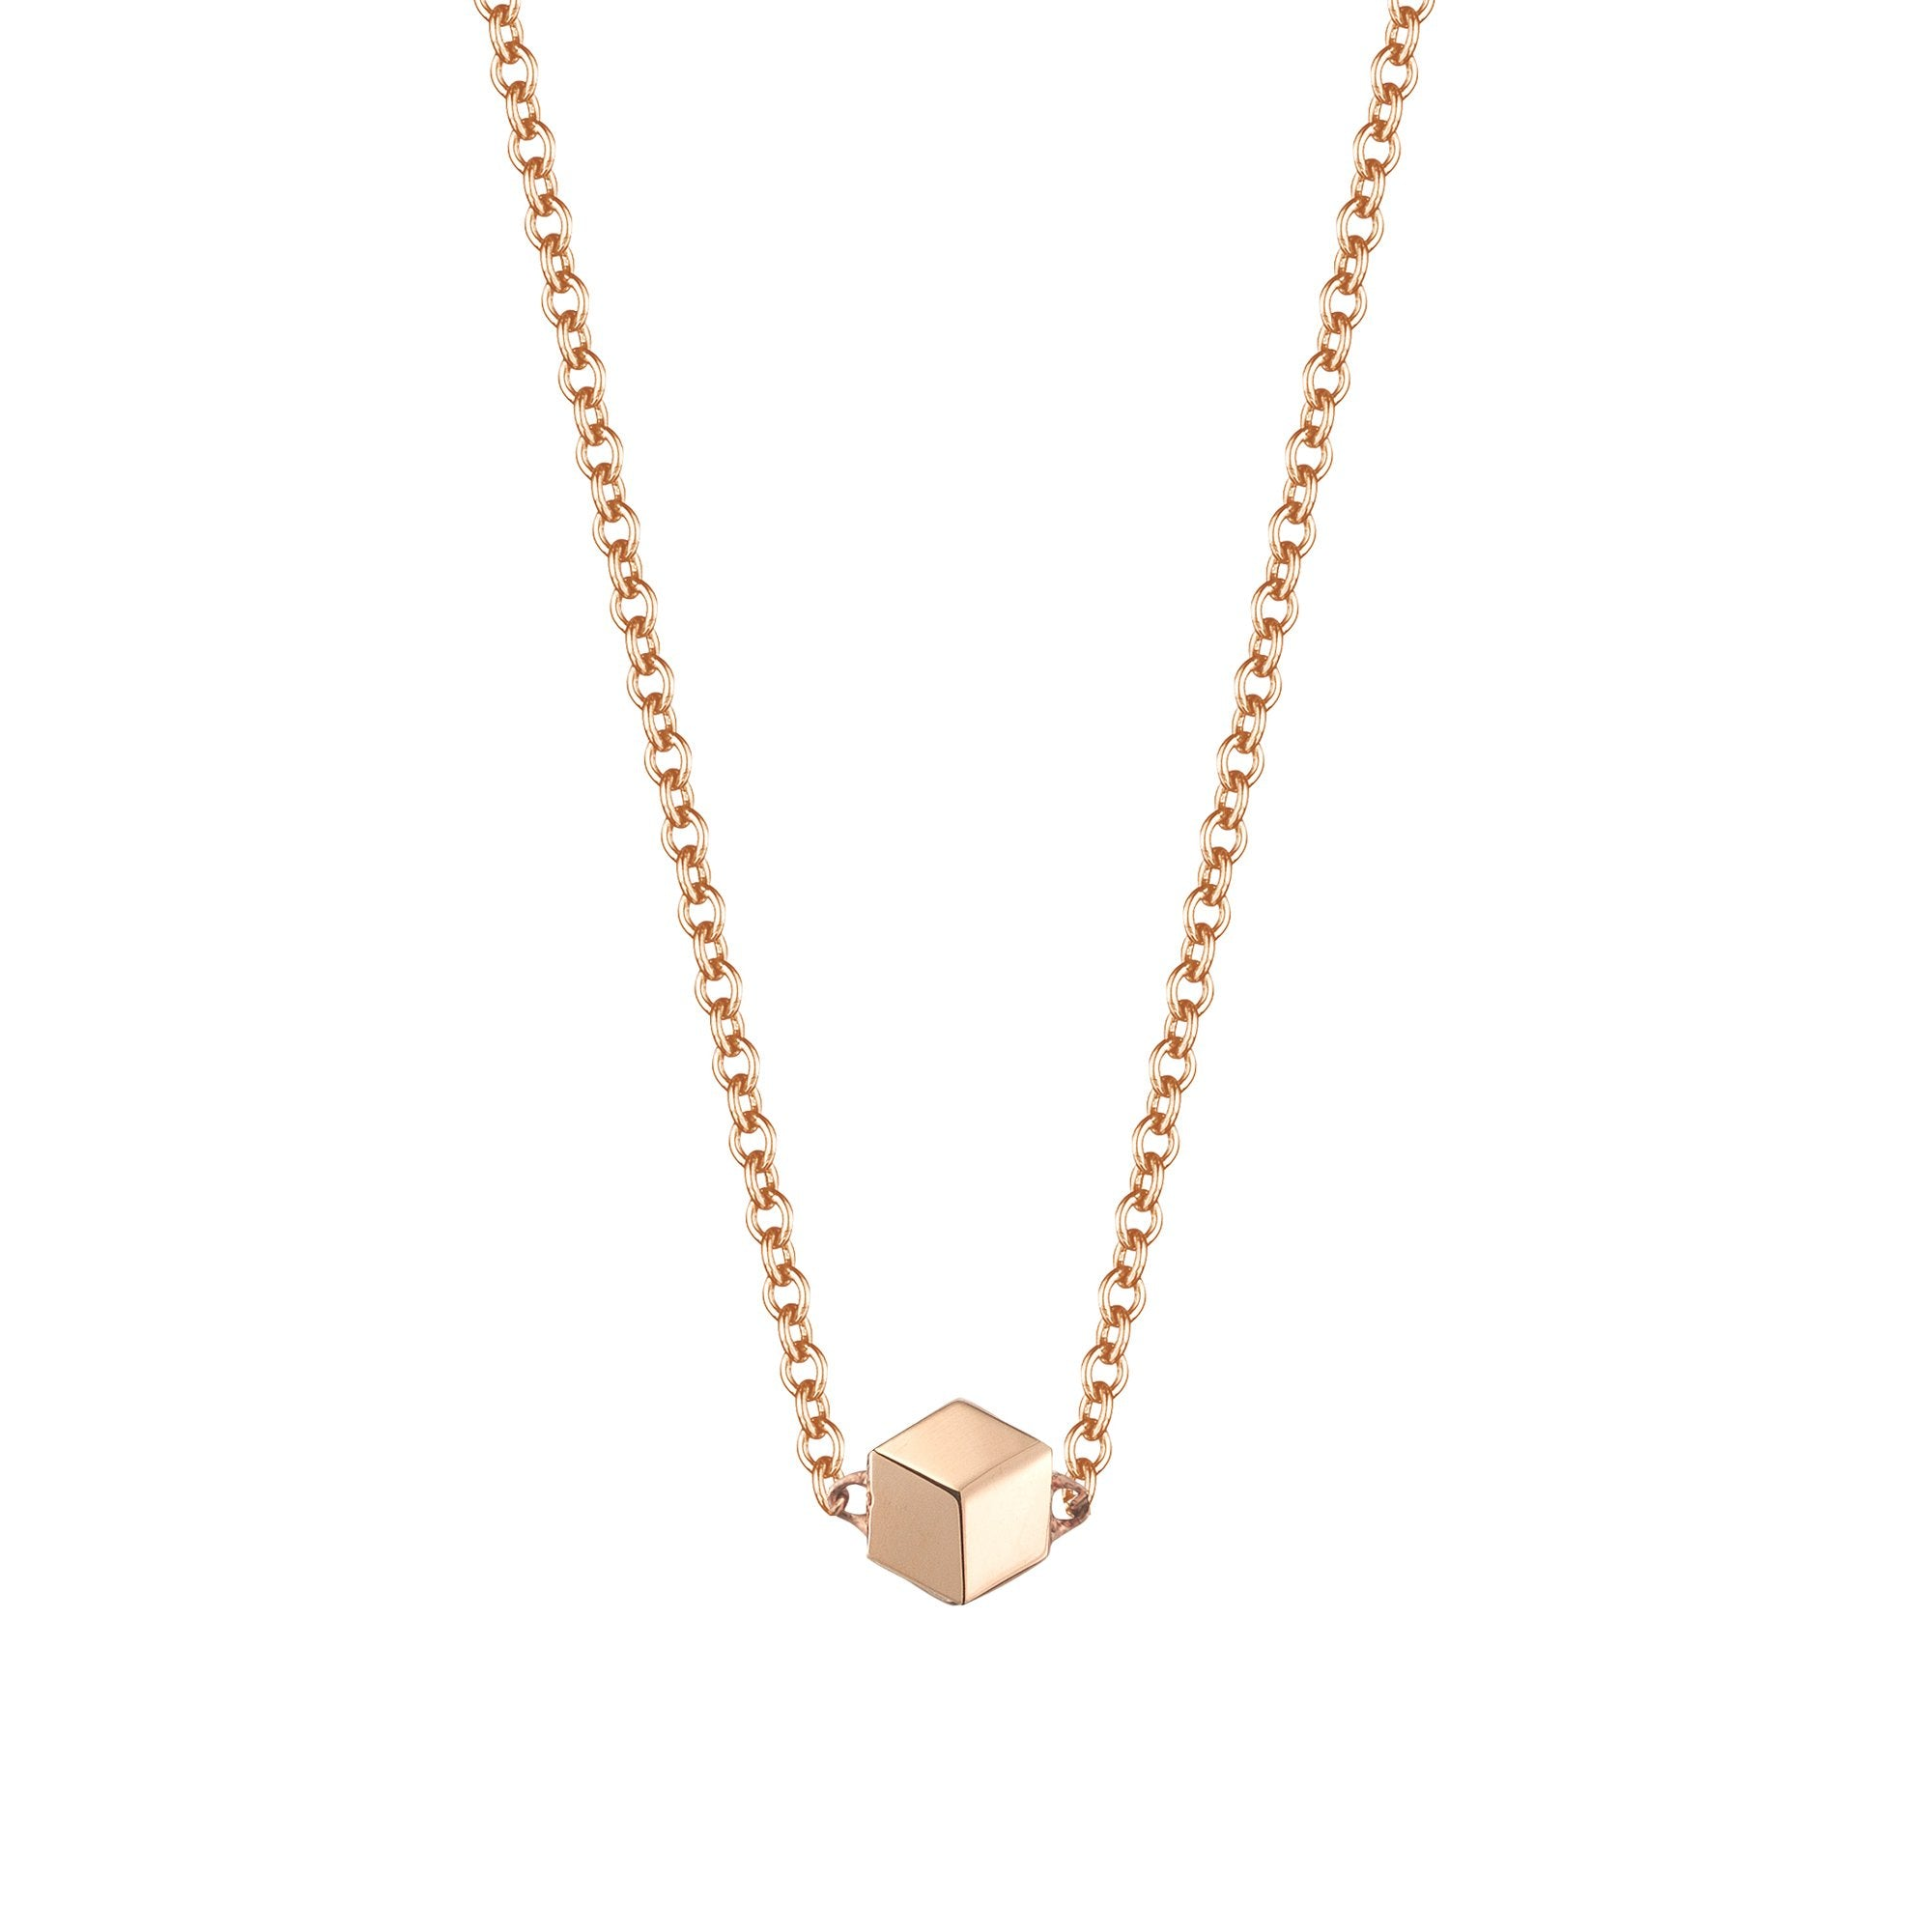 Buy 18kt Custom Rose Gold Necklace Design for Women | Paolo Costagli